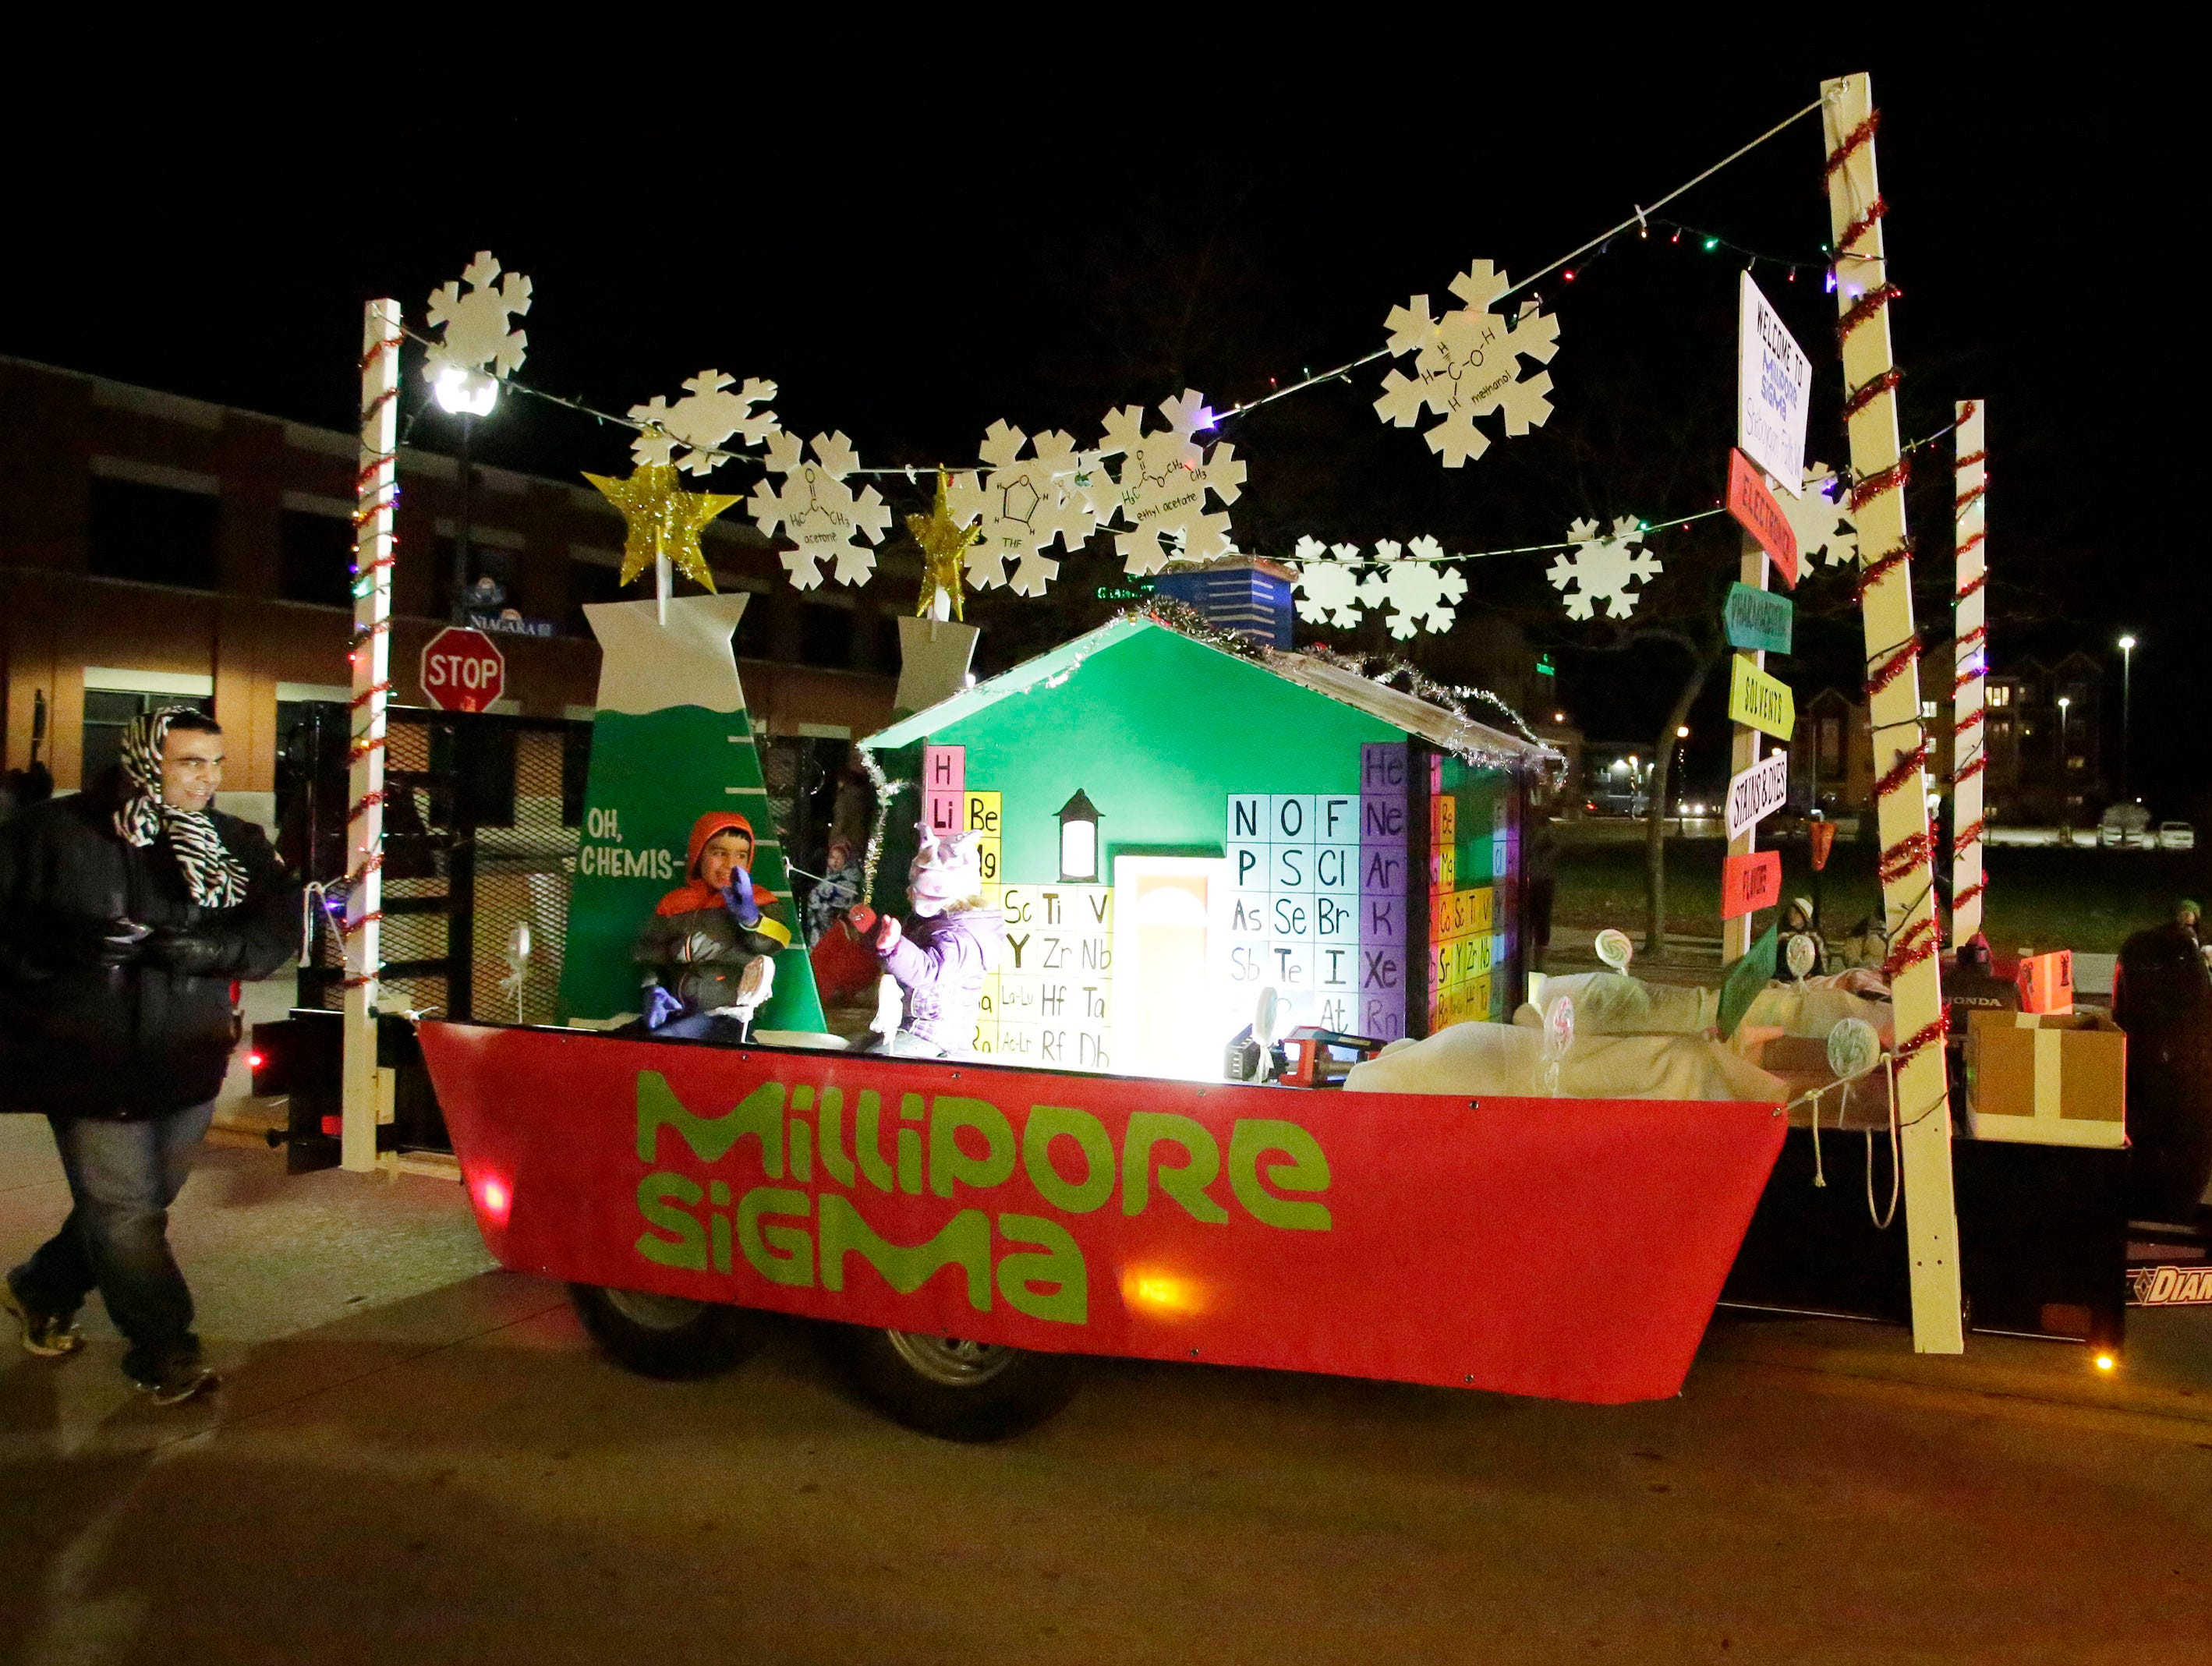 Millipore Sigma's float in the 26th Annual Jaycees Holiday Parade, Sunday, November 25, 2018 in Sheboygan, Wis.